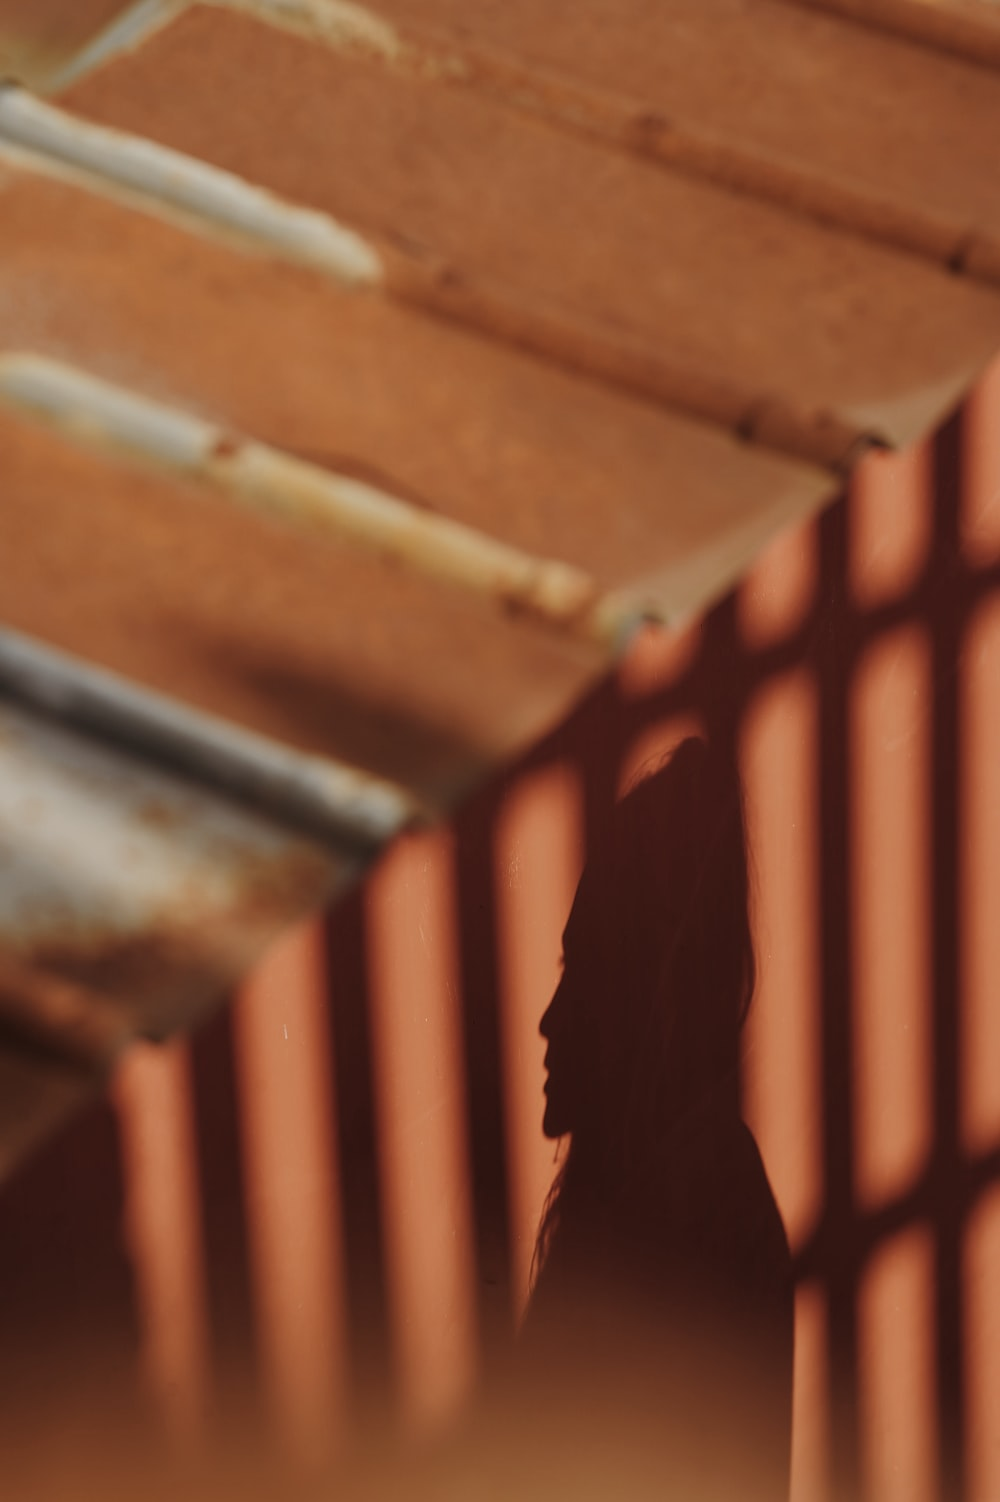 shadow of woman on brown wooden fence during daytime